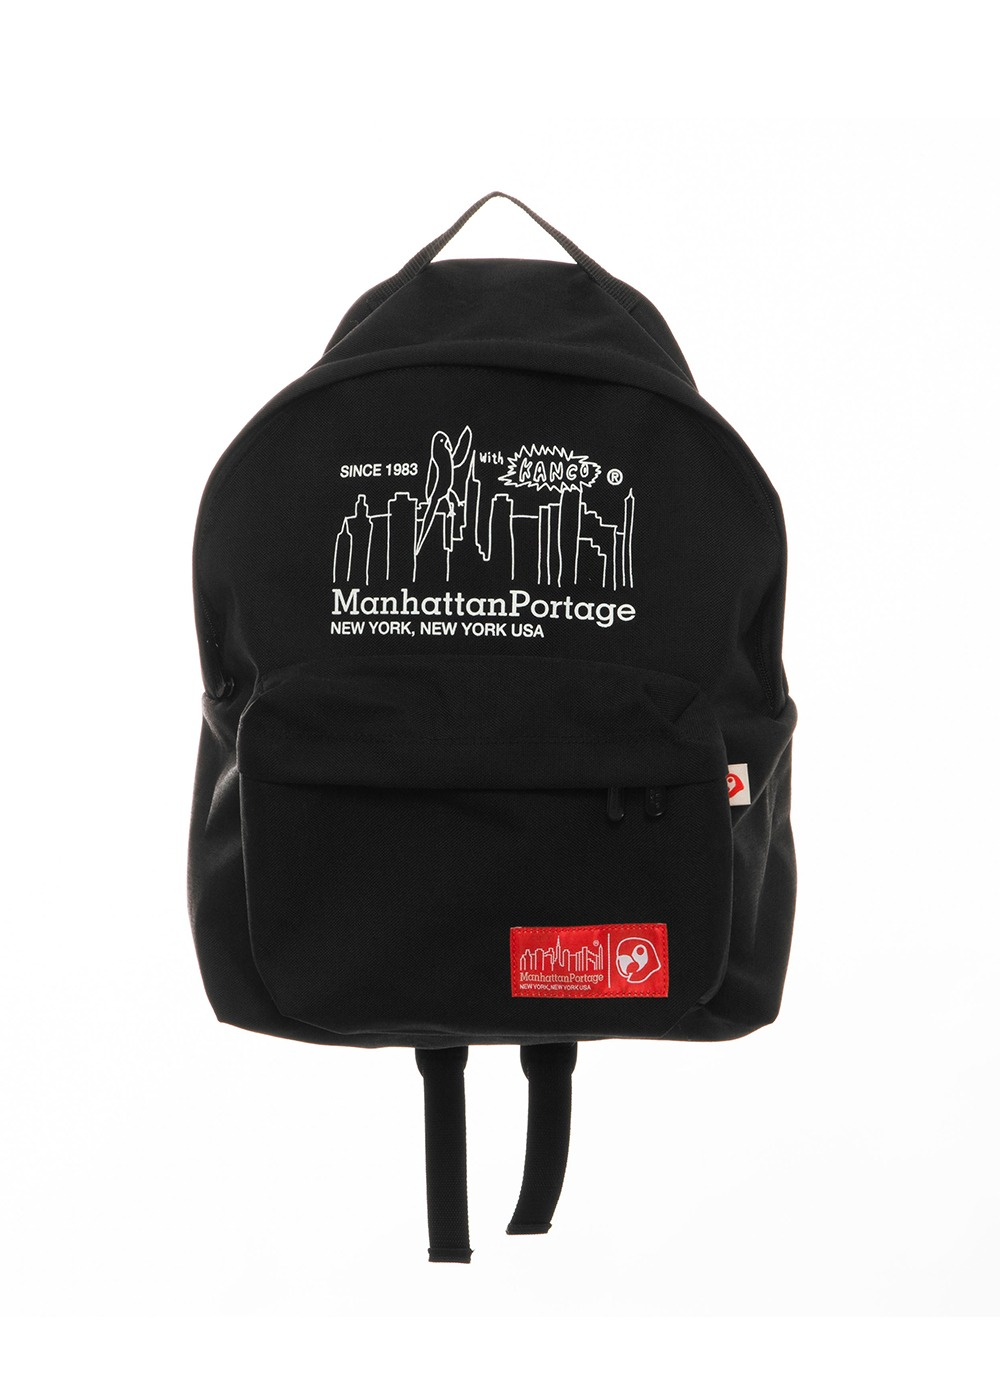 KANCO X MANHATTAN PORTAGE BIG APPLE BACKPACK black